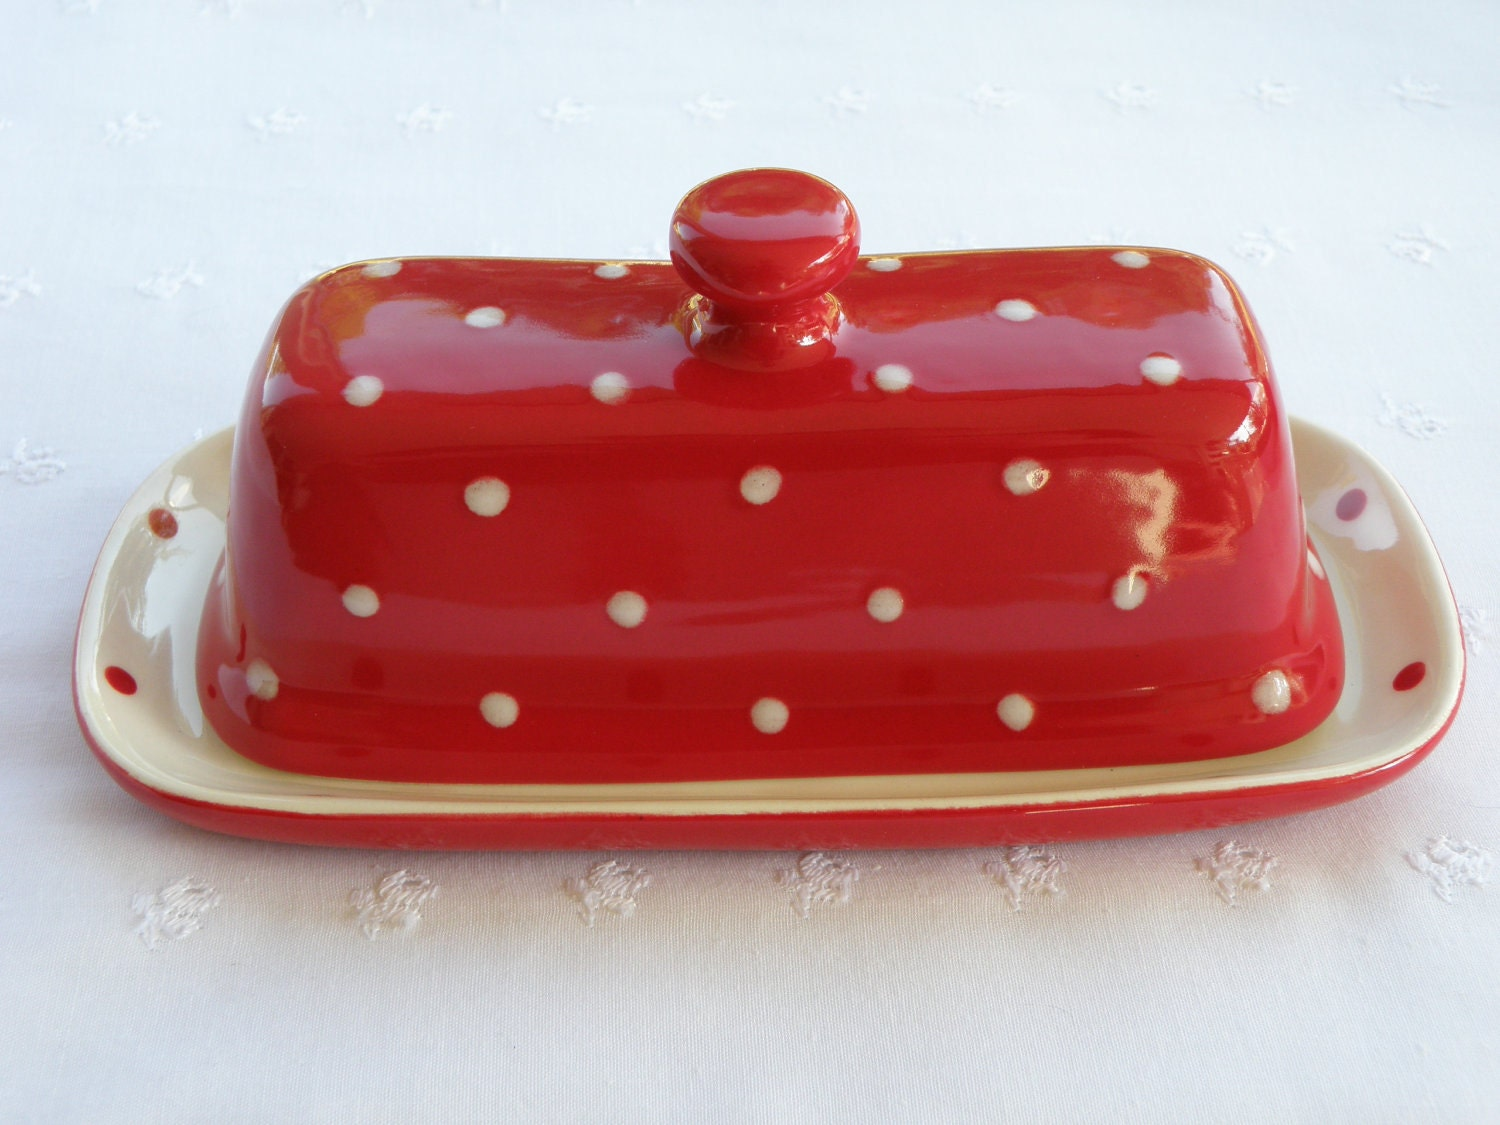 Red And White Polka Dot Butter Dish Server With Lid Knob